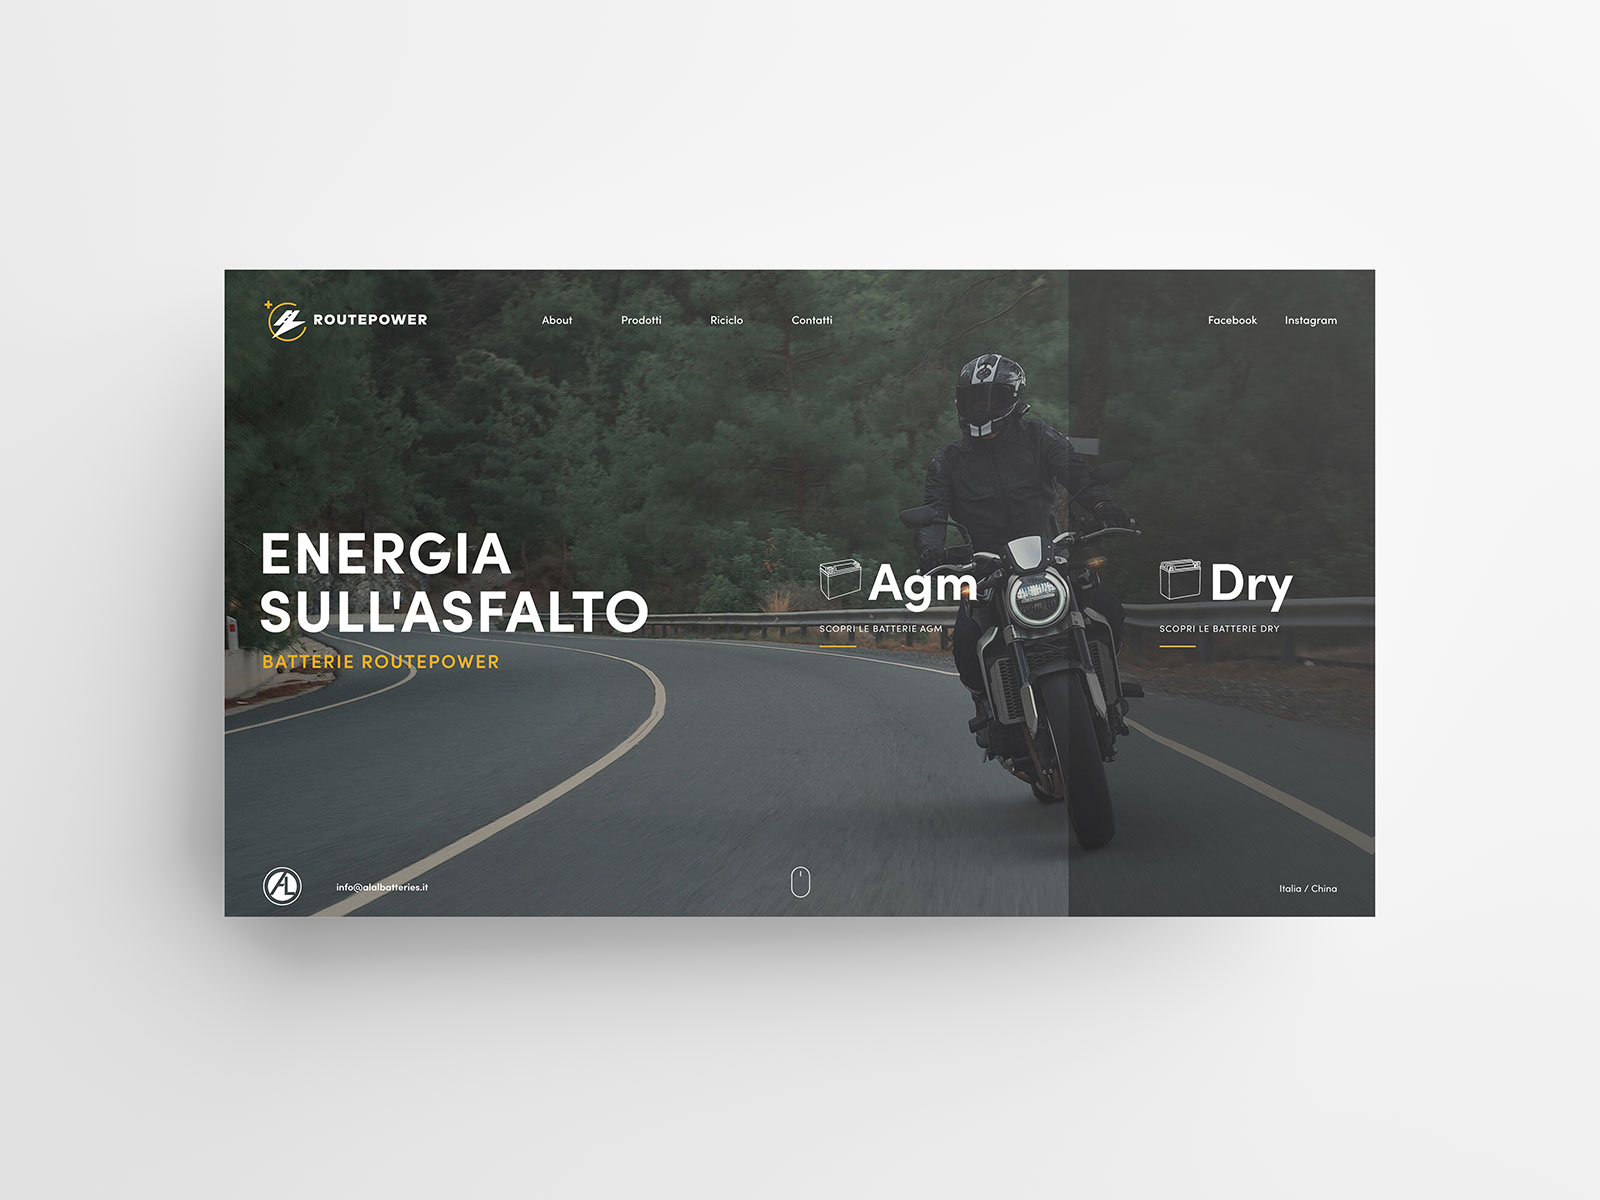 Studio K95 – Routepower - UI/UX Design